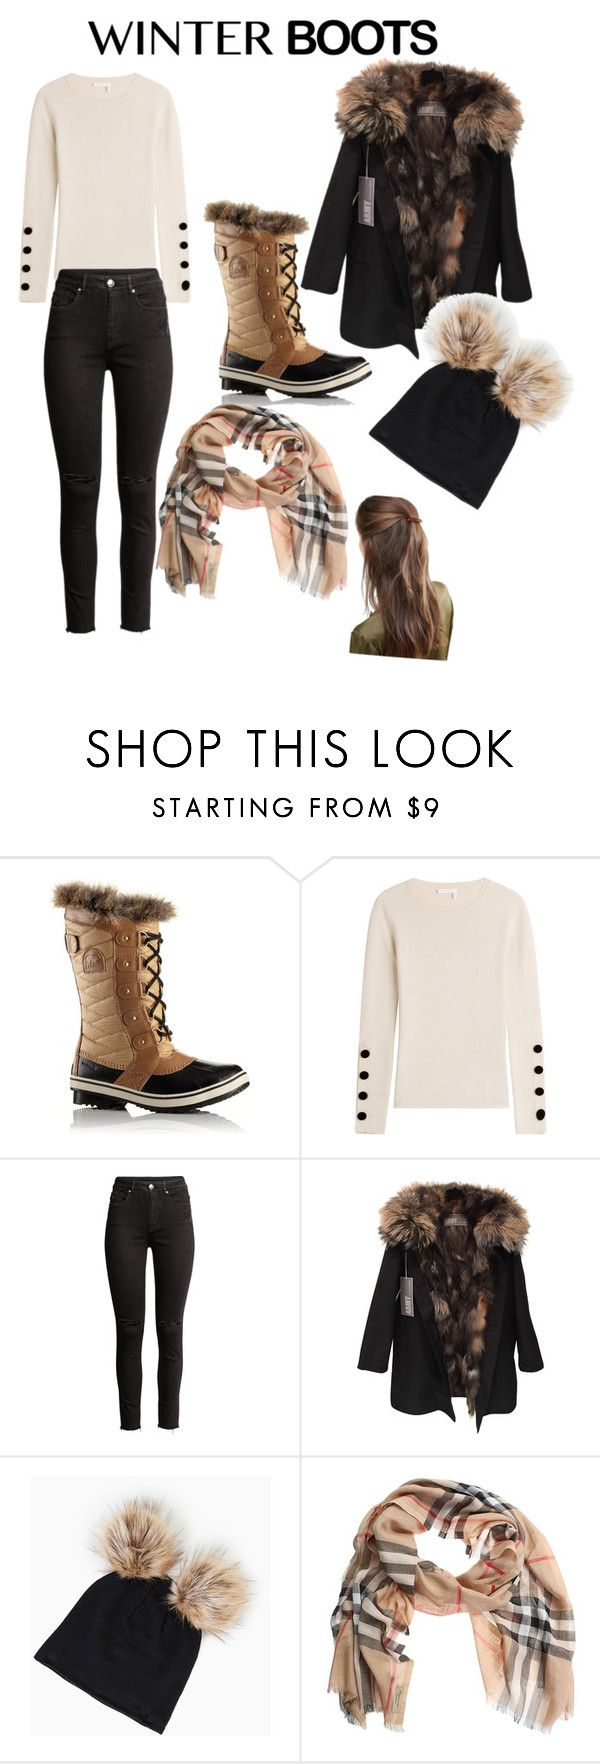 """winter"" by spencer-stacy ❤ liked on Polyvore featuring SOREL, See by Chloé, Yves Salomon, Burberry and DesignB London"